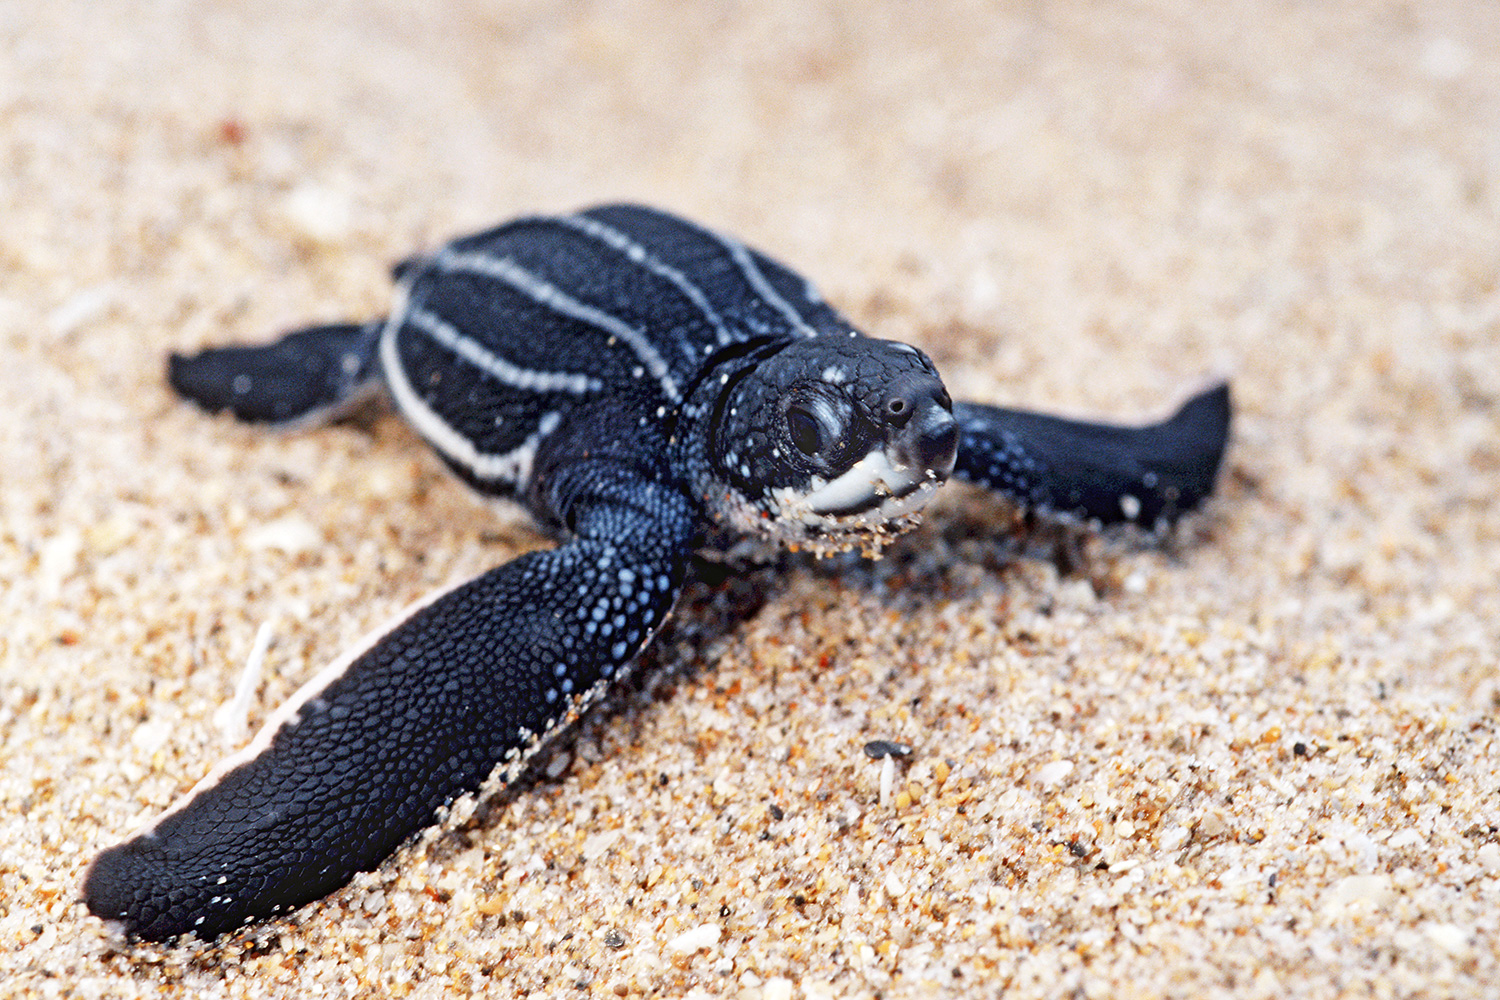 Stock Sea Turtle Image